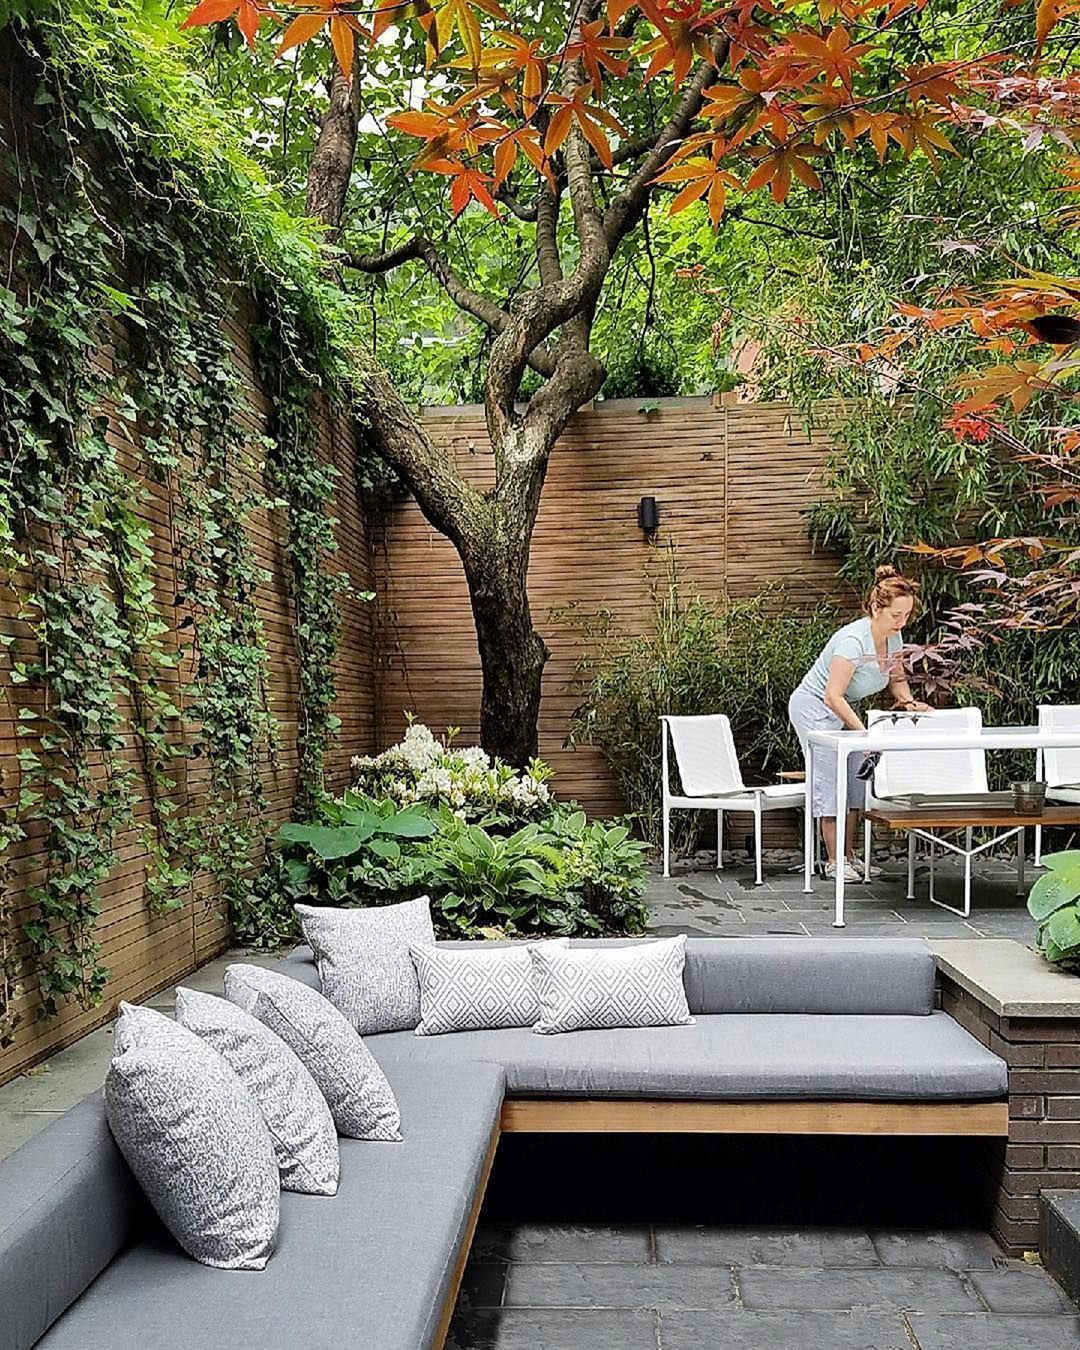 22 Marvelous Winter Garden Design For Small Backyard Landscaping Ideas — TERACEE - Elaine